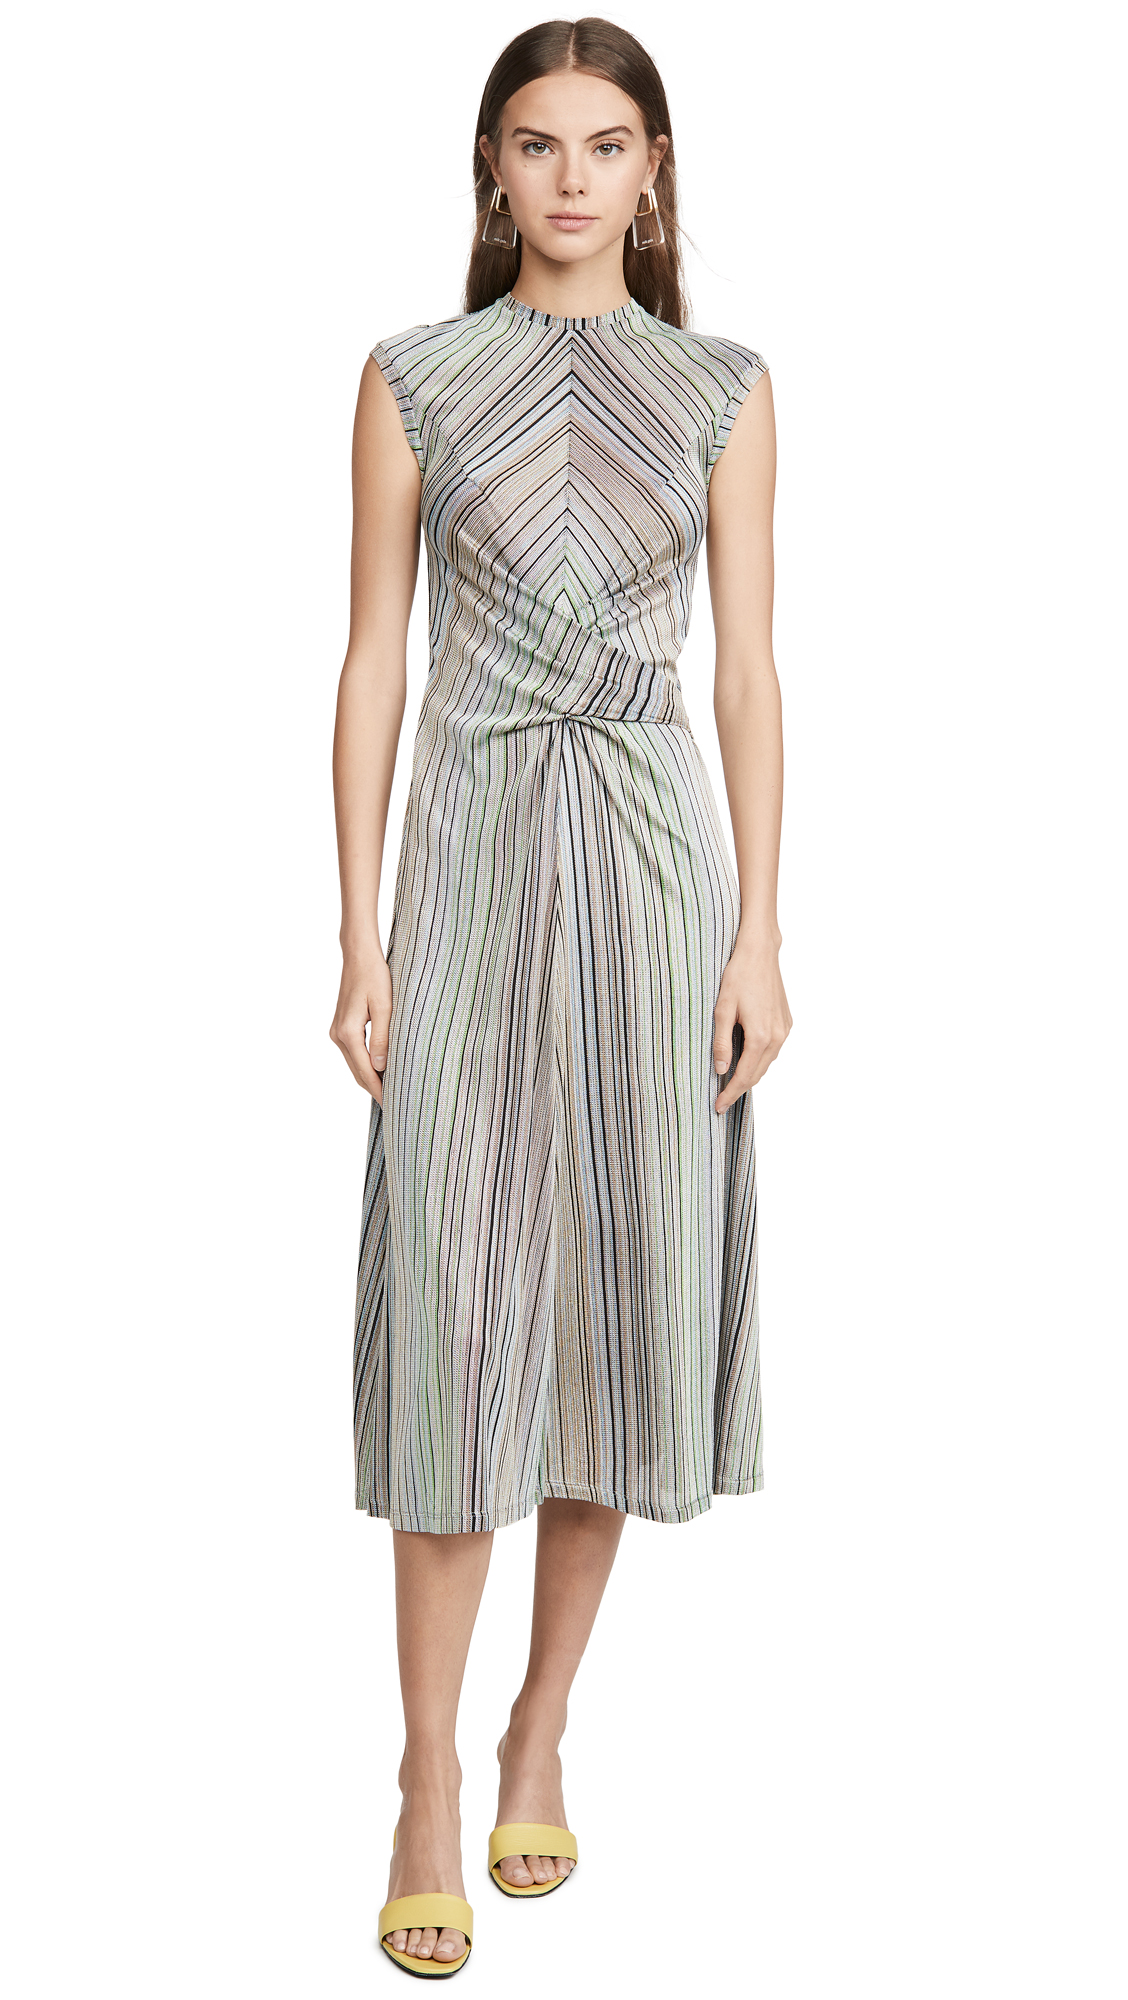 Beaufille Chagall Dress – 30% Off Sale